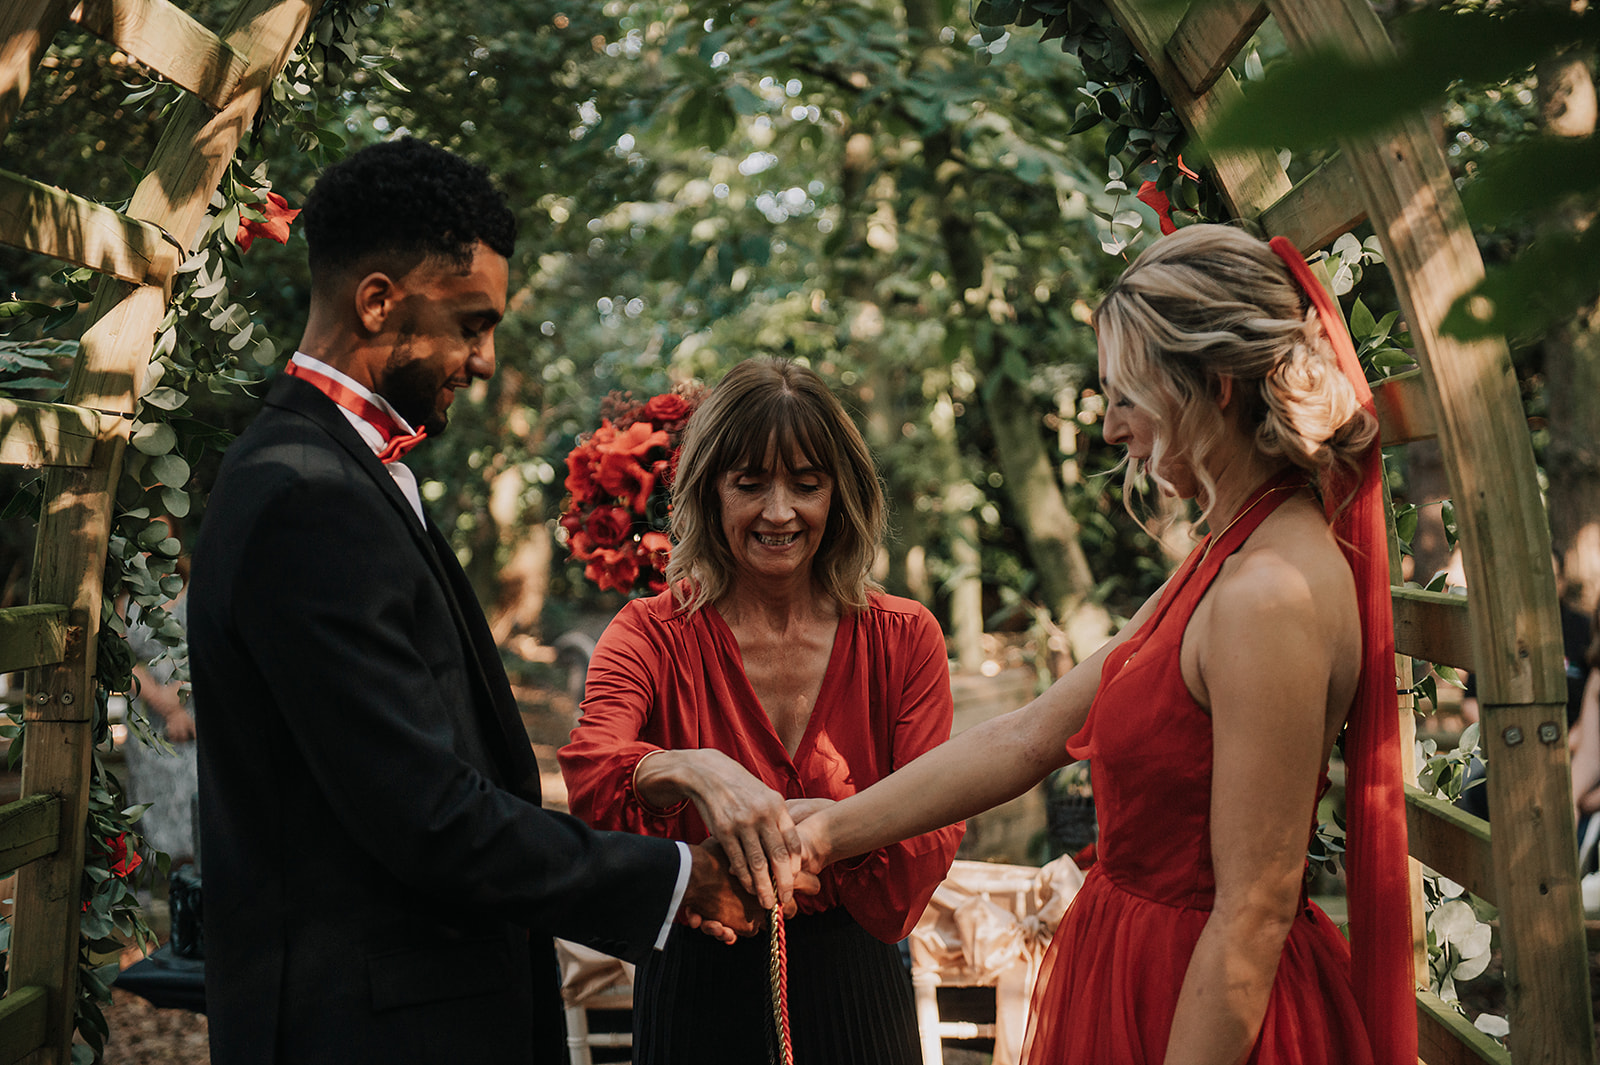 red wedding - forest elopement - forest handfasting ceremony - small wedding ceremony- red wedding dress